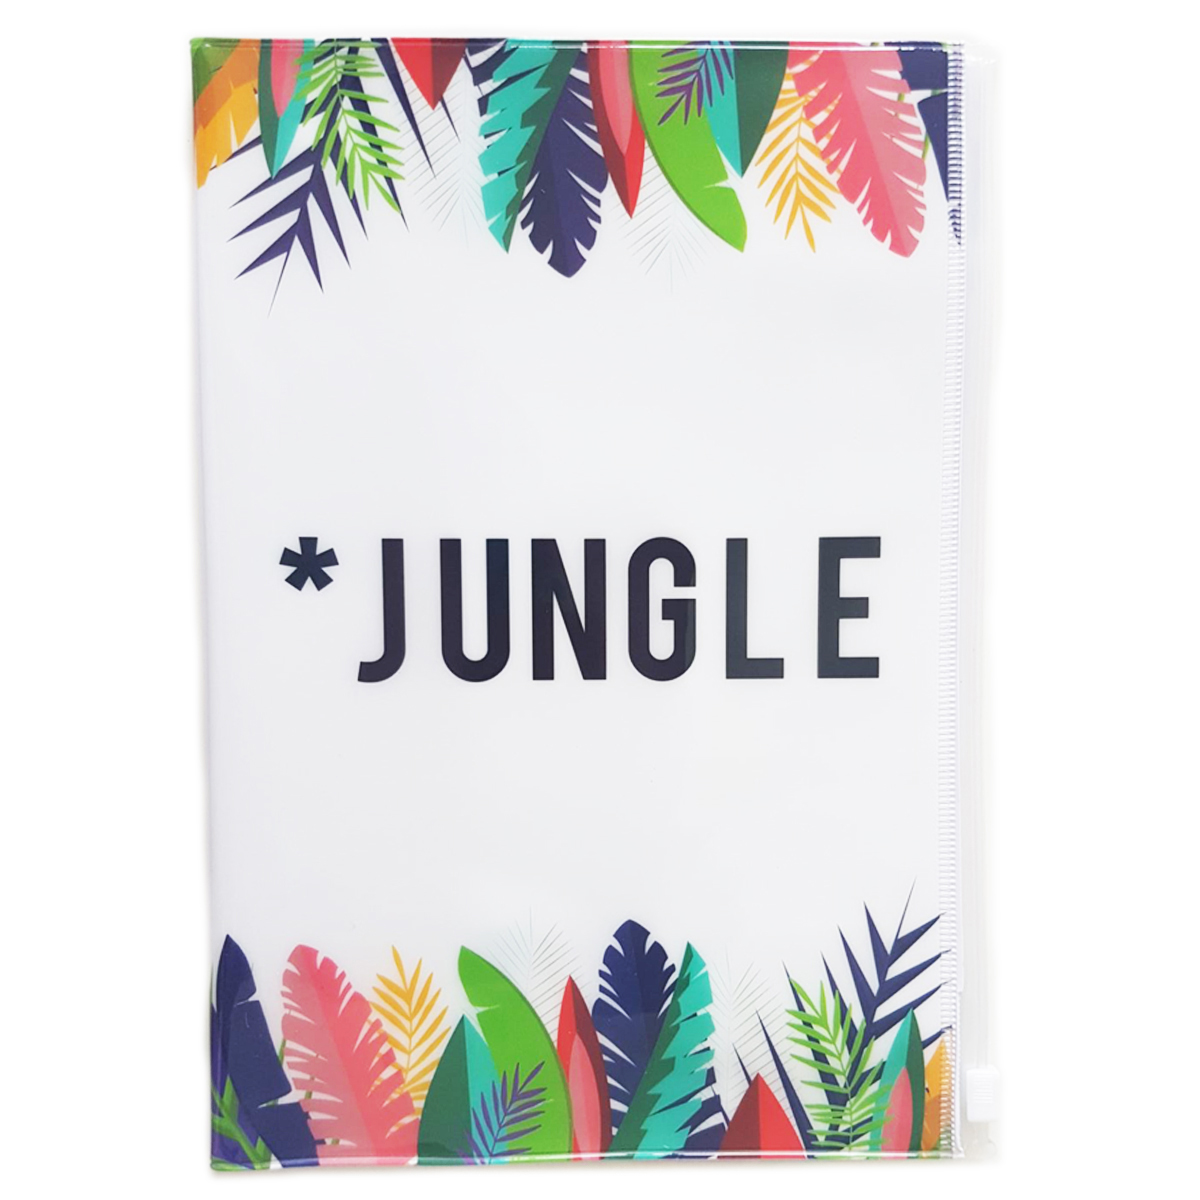 Organisateur de voyage \'Tropical\' blanc multicolore (jungle) - 23x16 cm - [A0376]